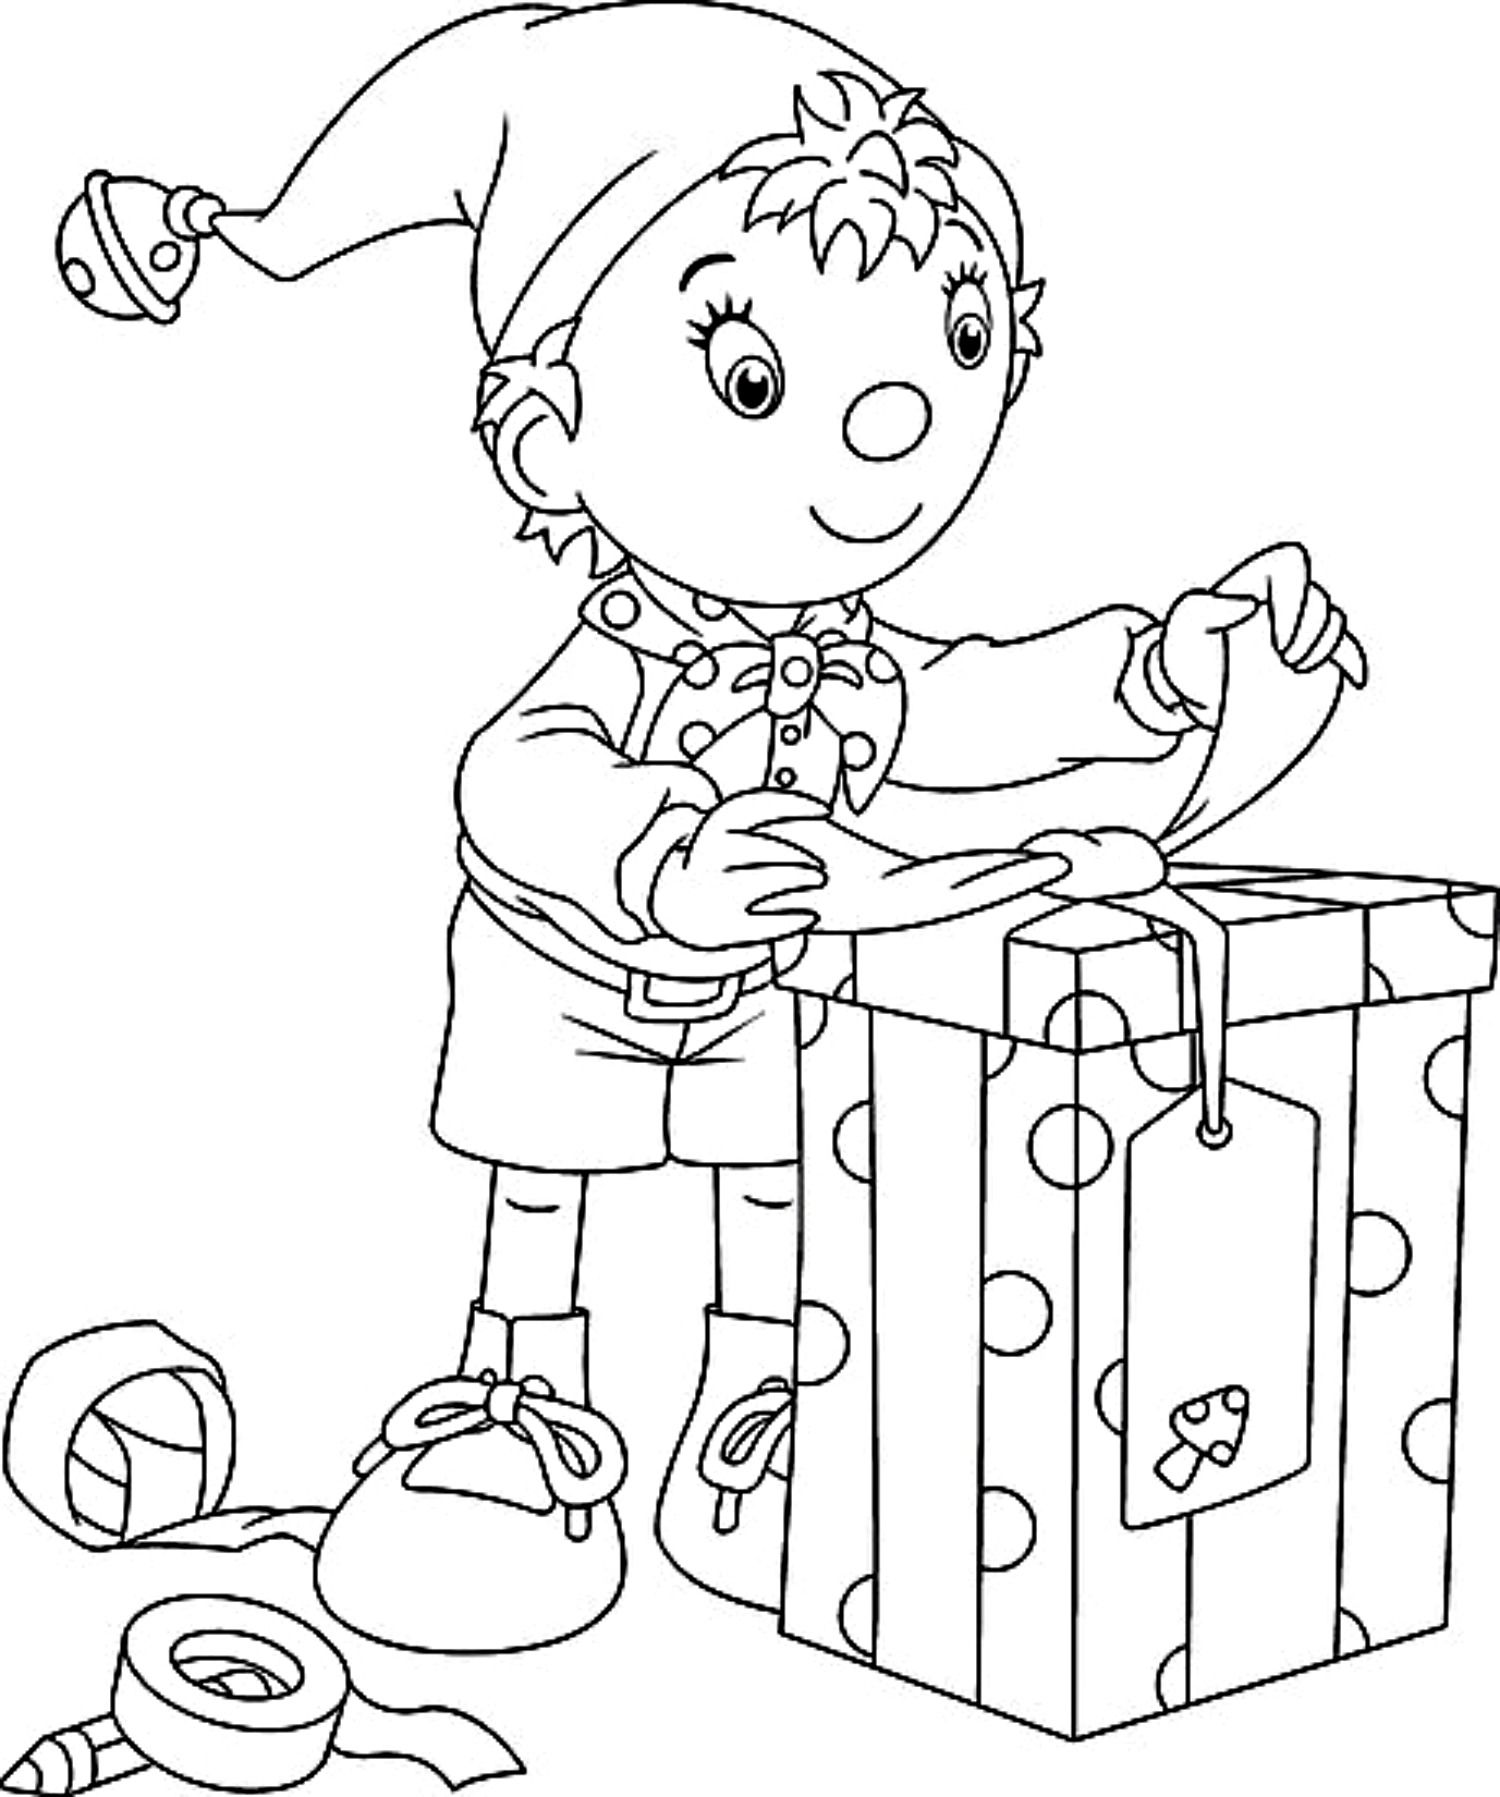 CHRISTMAS COLORING PAGE Santa Song And Free Printable Christmas Elf Coloring Page For Kids